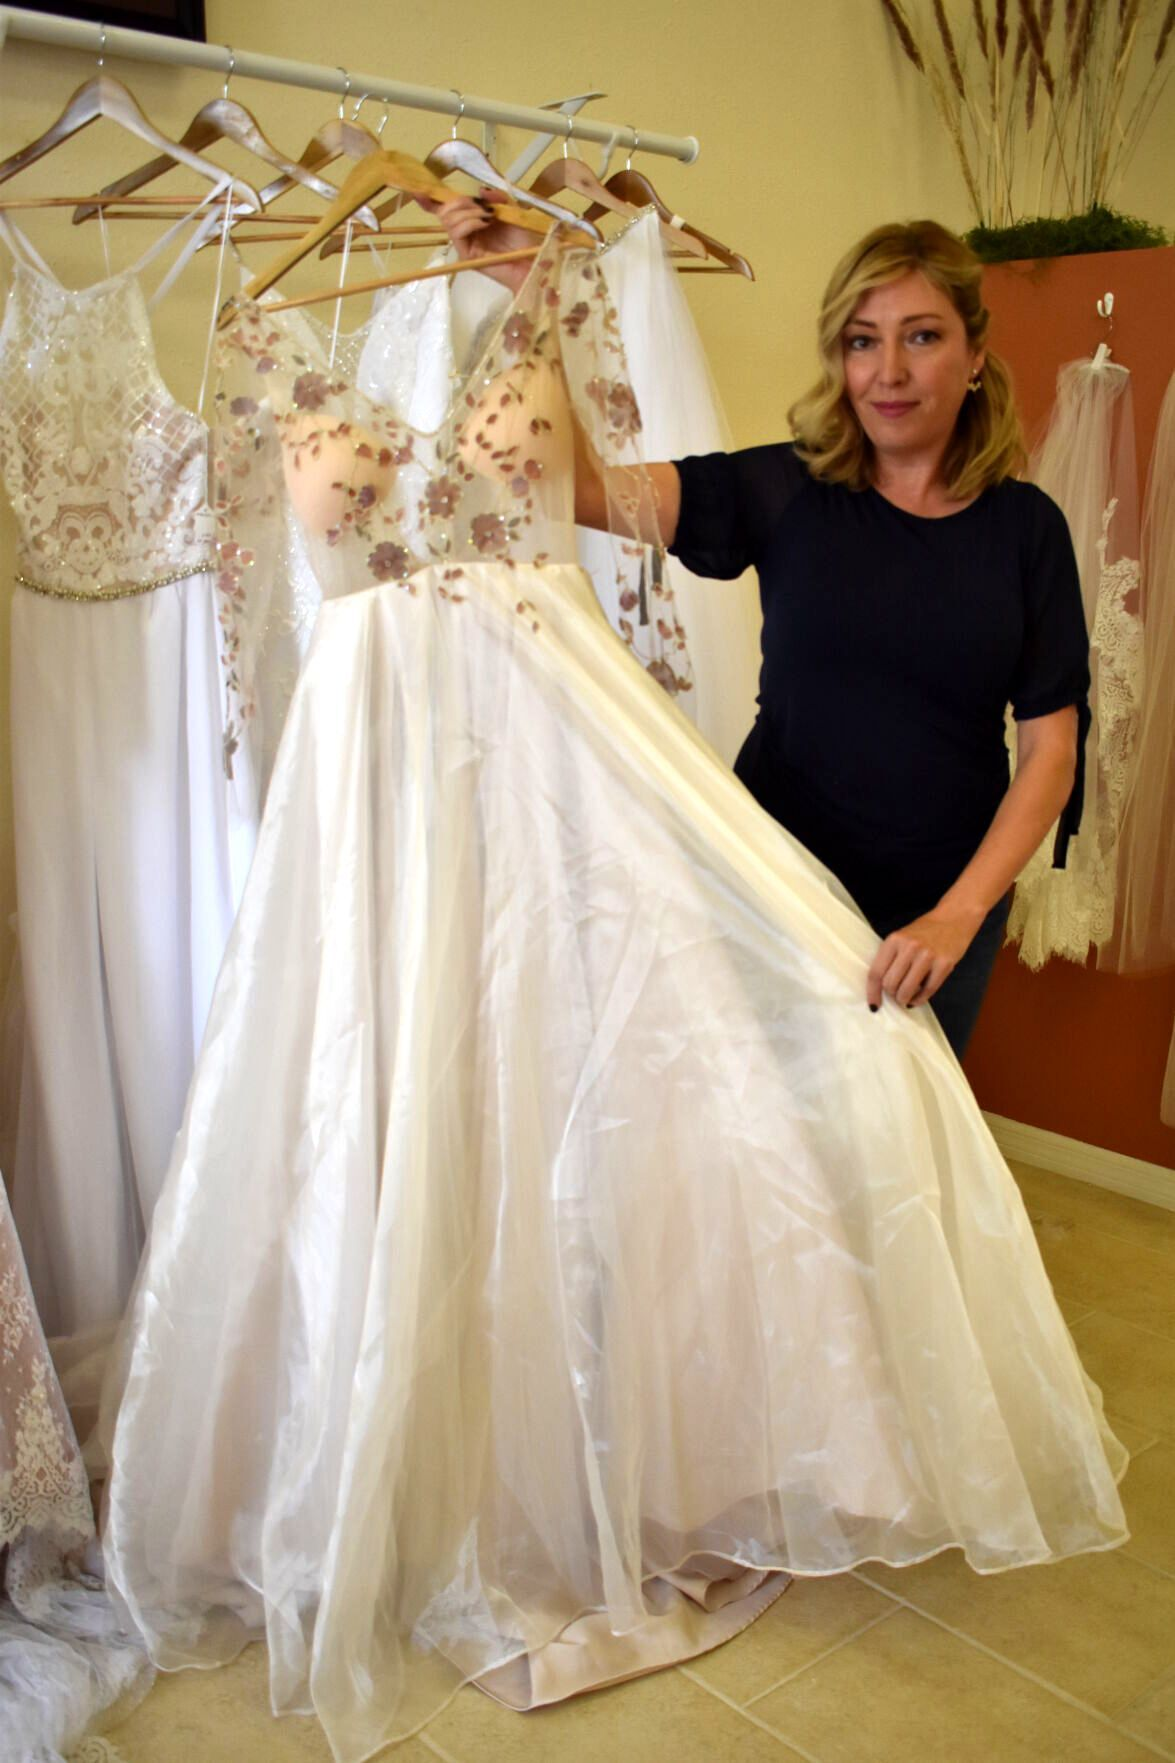 Designer Lily Rivera displays one of her popular bridal gowns